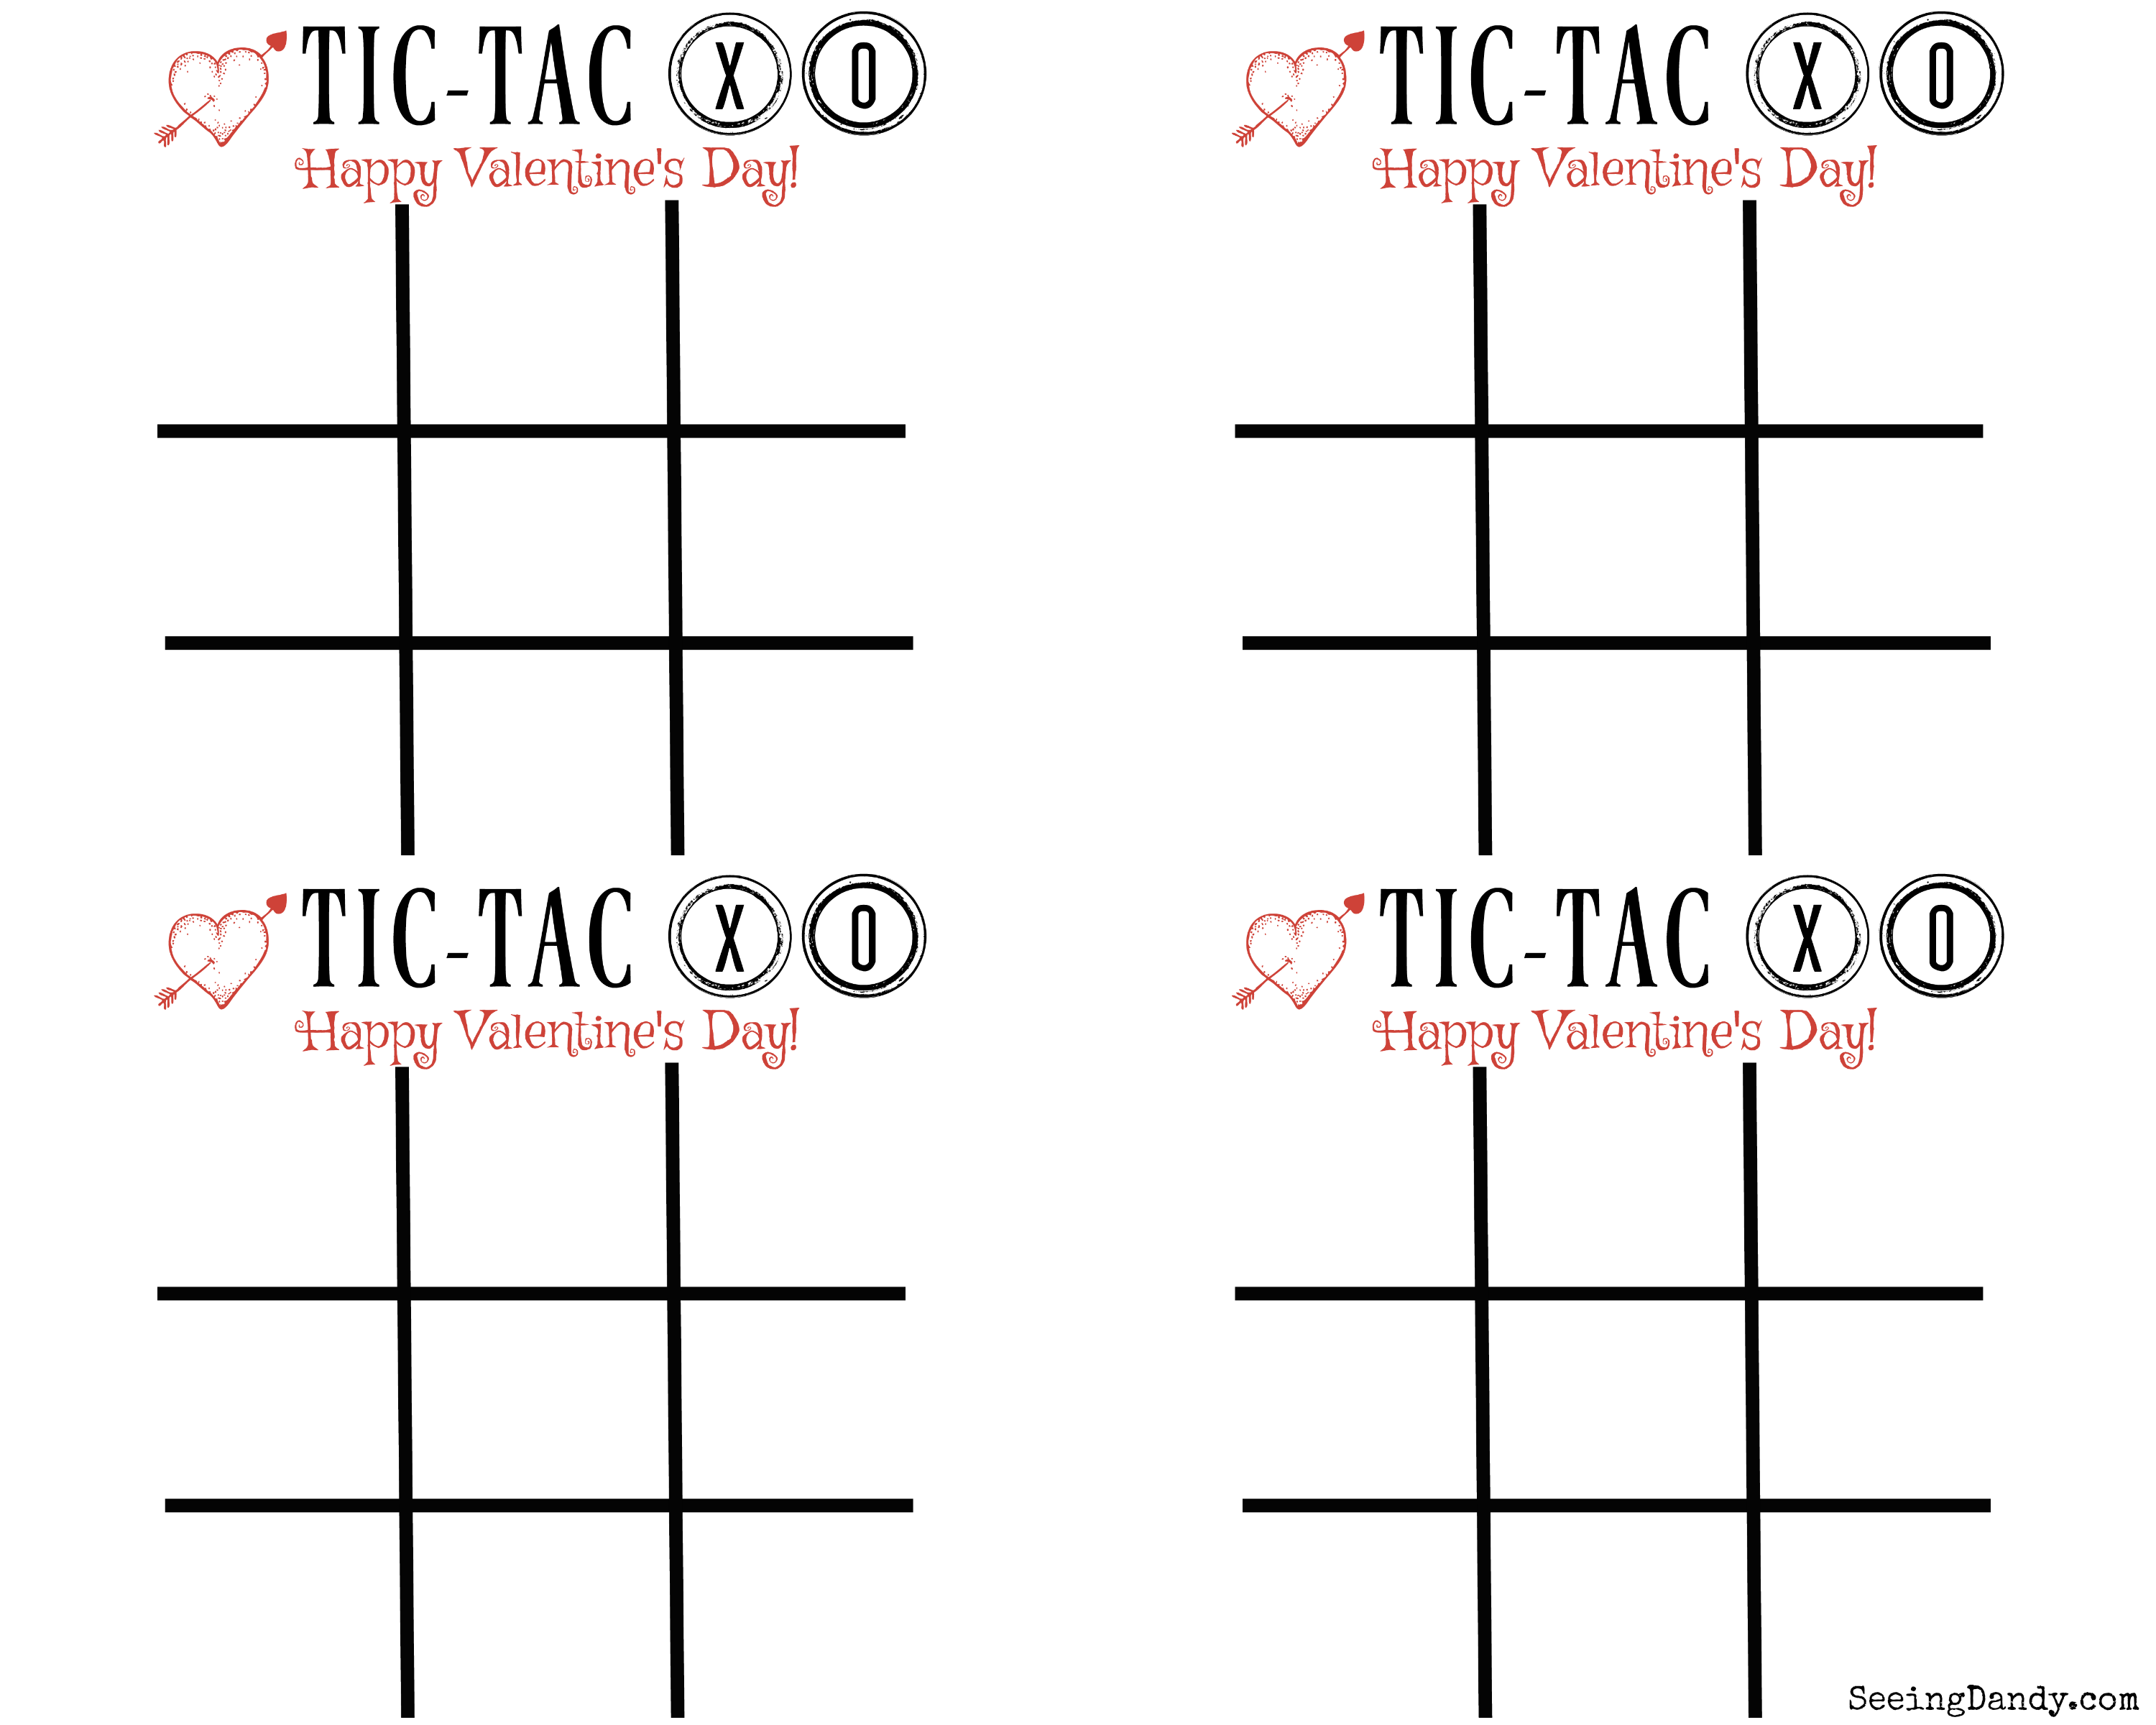 Free printable tic tac xo cards pdf download to play the fun game on Valentine's Day.